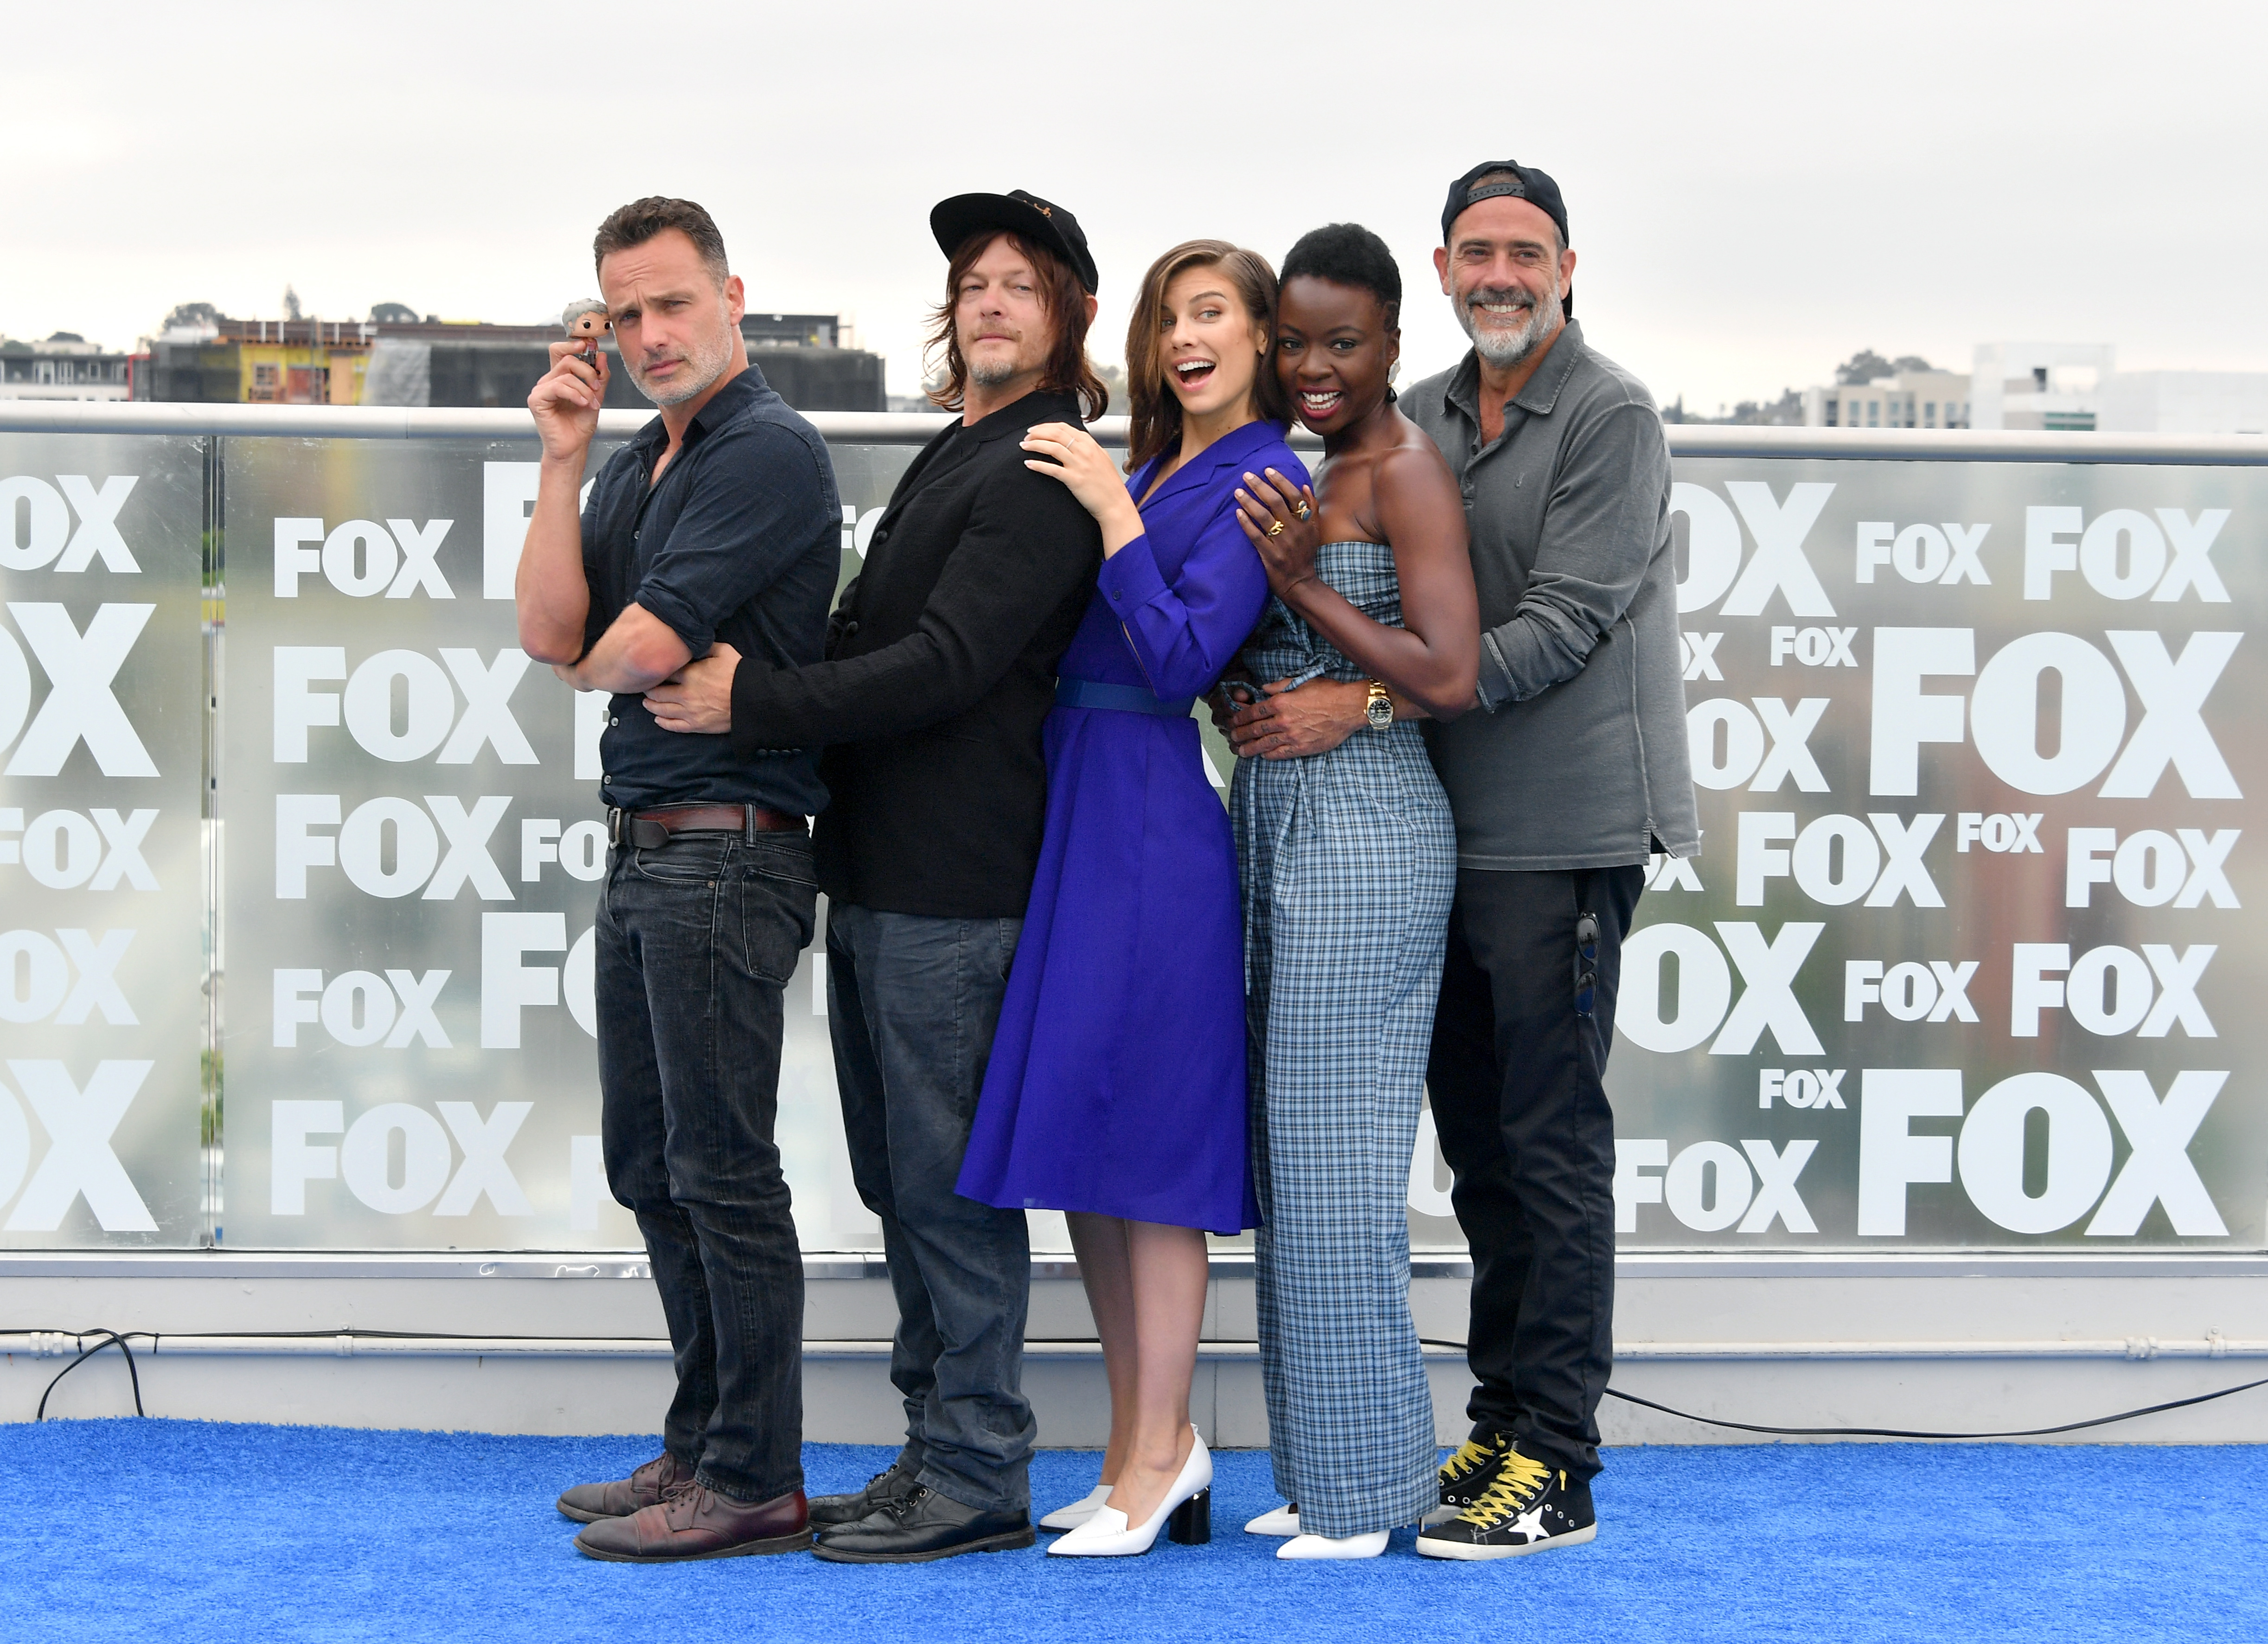 (L-R) Andrew Lincoln, Norman Reedus, Lauren Cohan, Danai Gurira, and Jeffrey Dean Morgan attend 'The Walking Dead' Photo Call during Comic-Con International 2018 at Andaz San Diego on July 20, 2018 in San Diego, California.